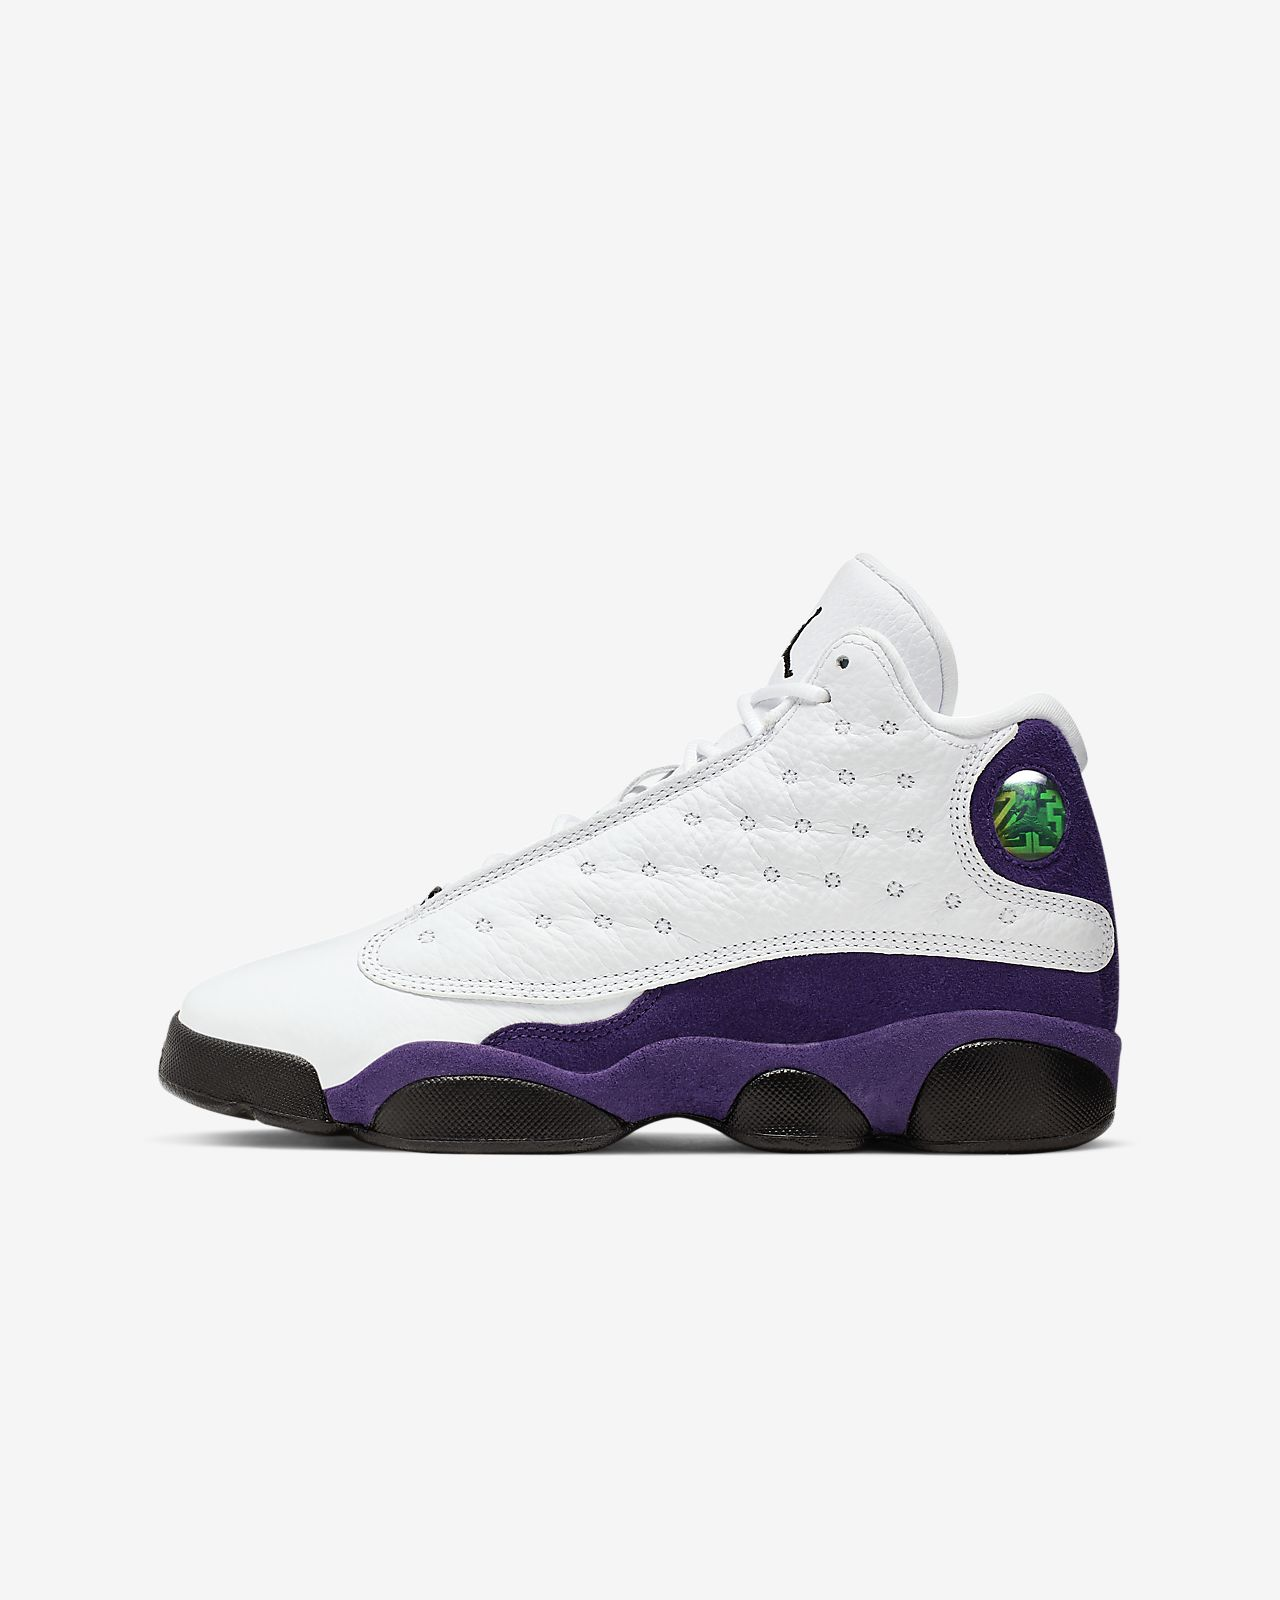 reputable site 0d12f 23a24 Air Jordan 13 Retro Big Kids' Shoe